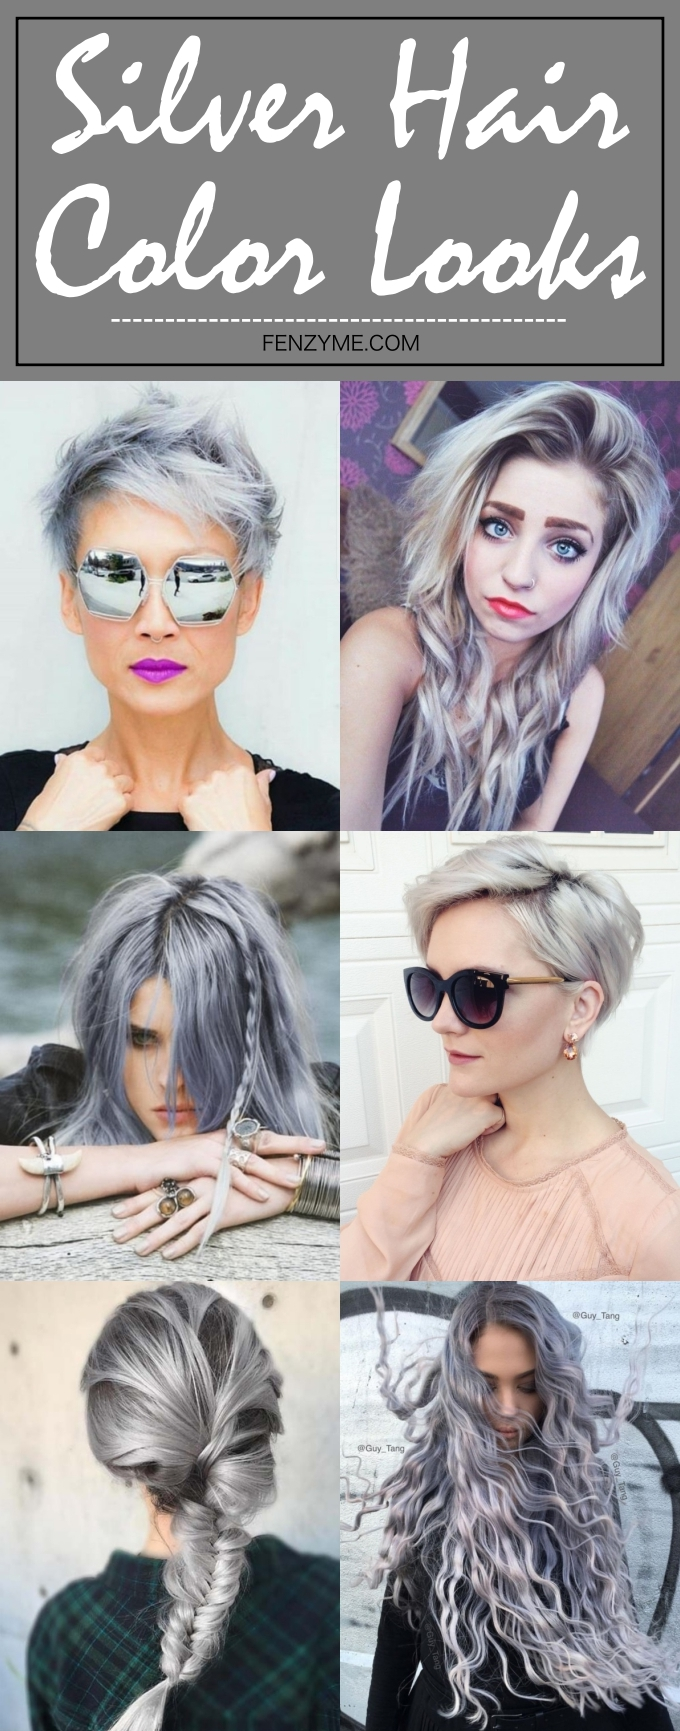 Silver Hair Color Looks